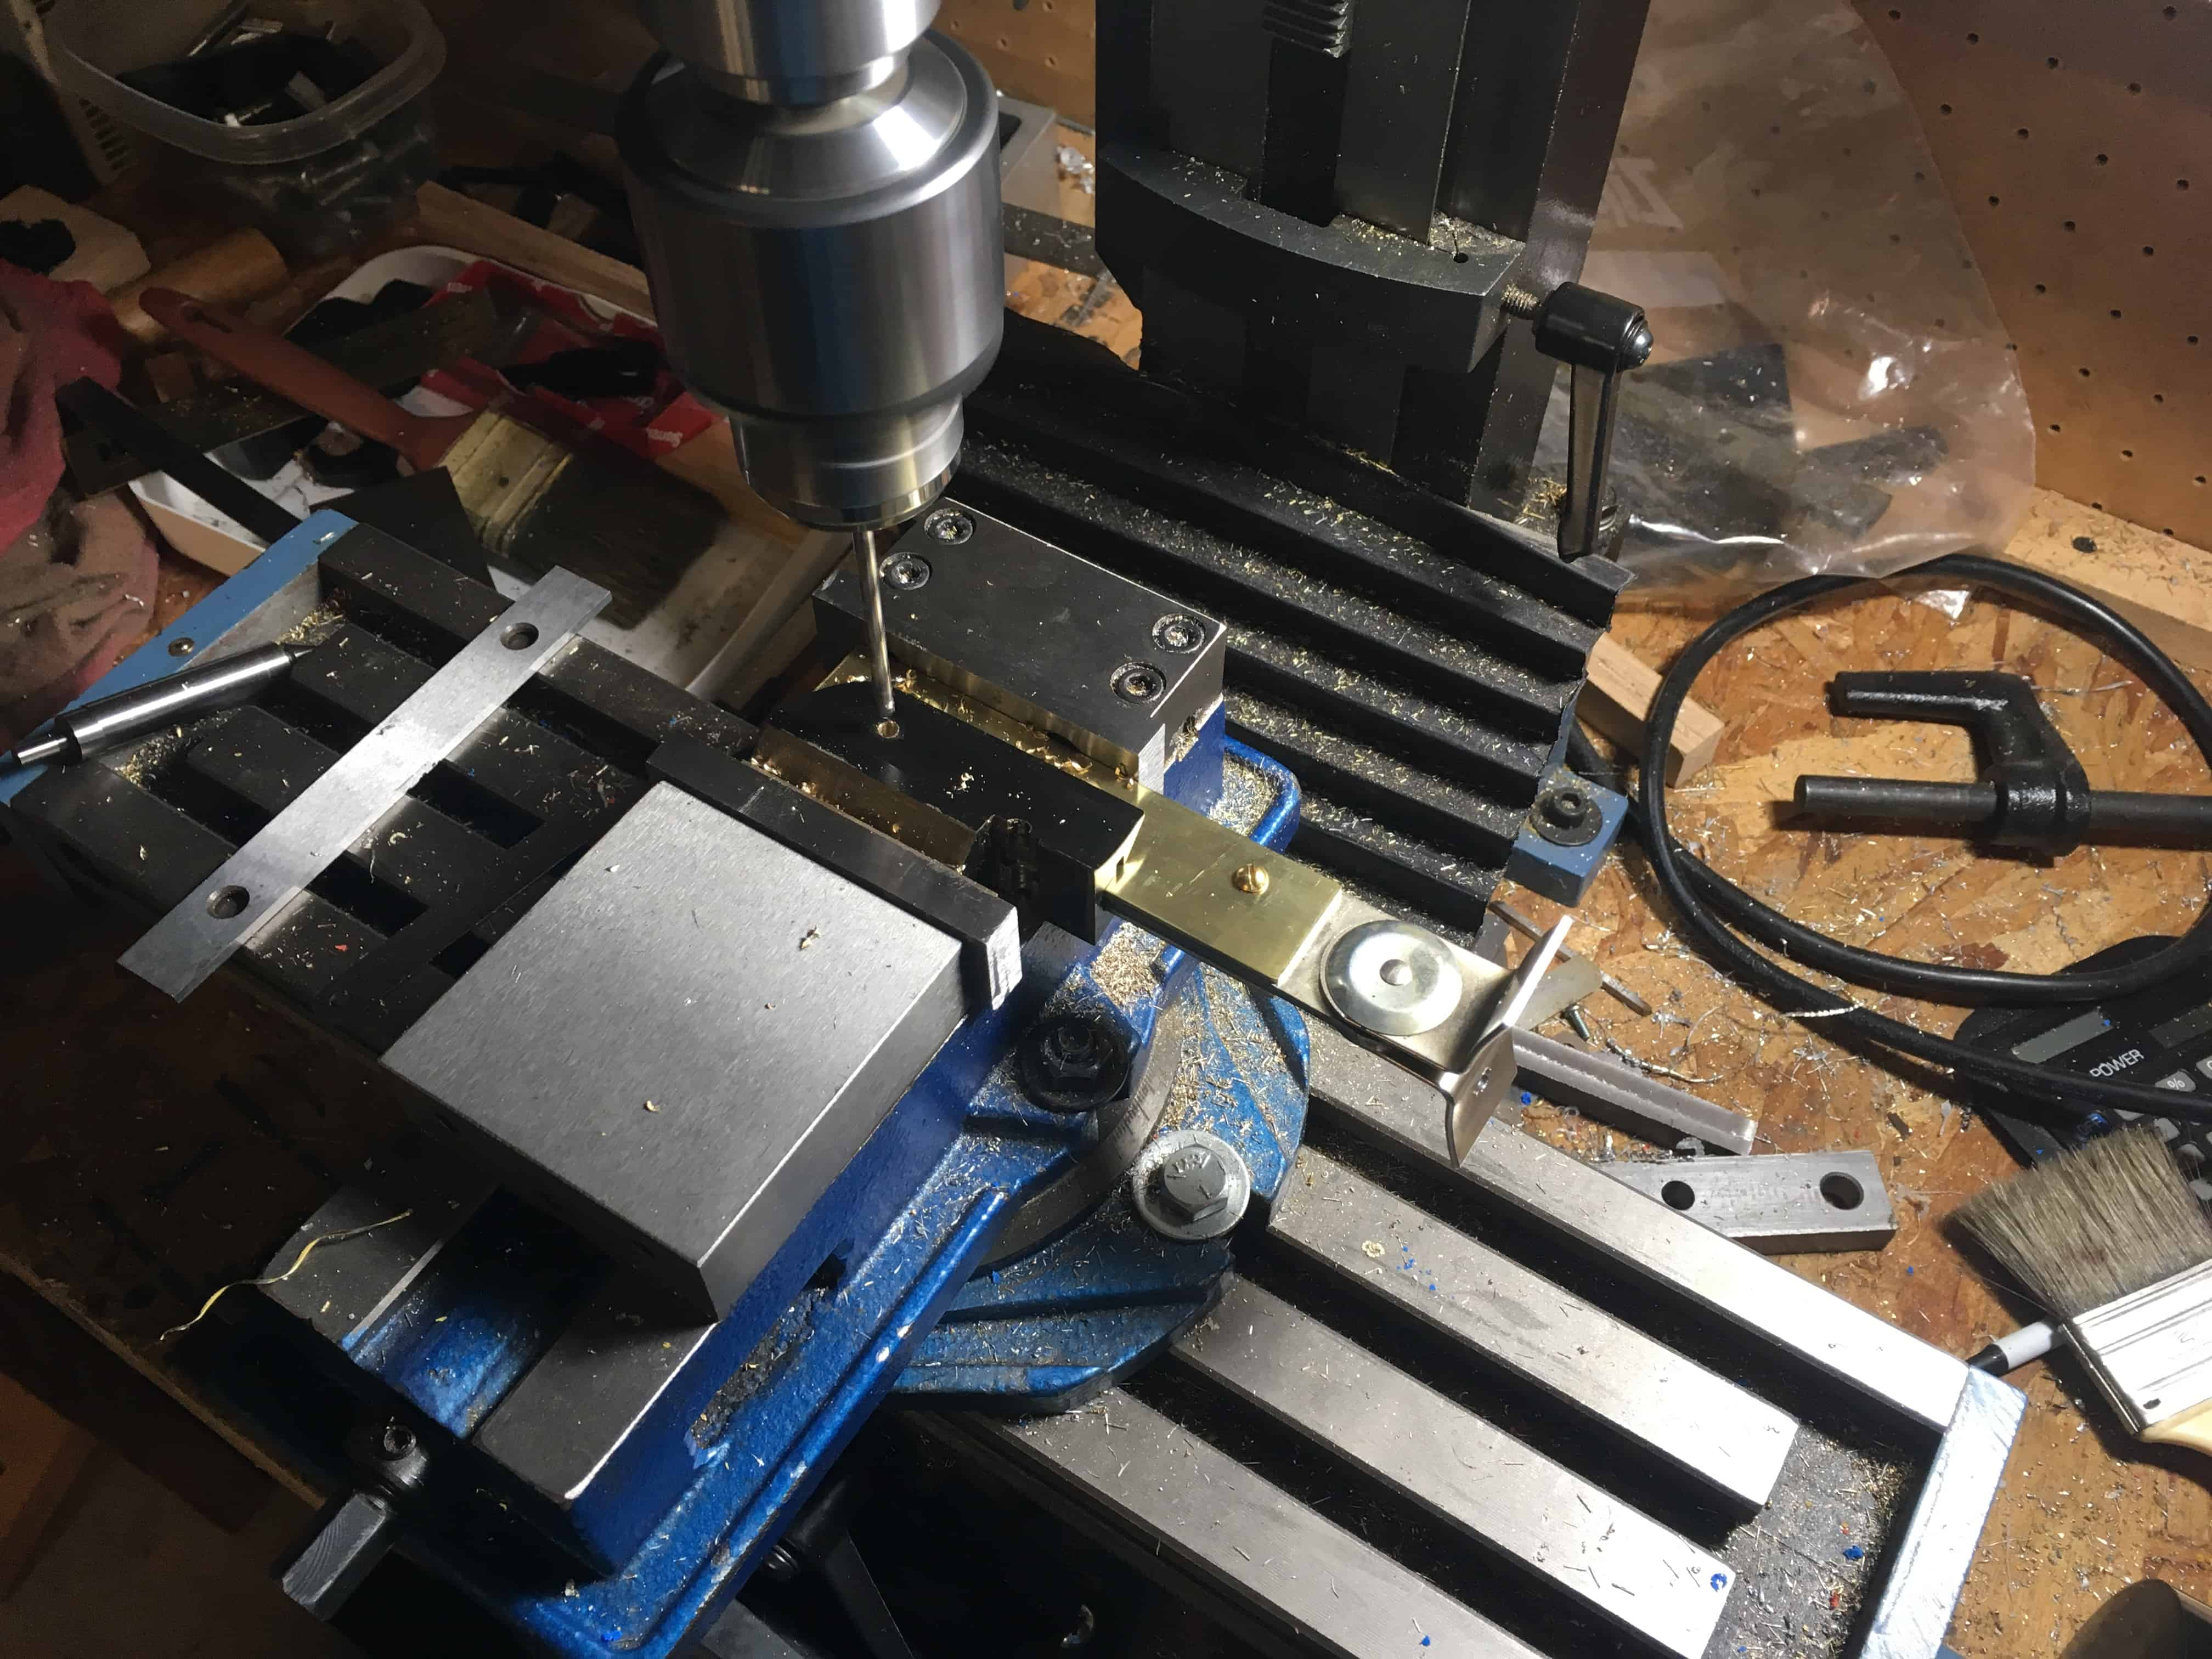 Drilling micrscope slide and handle+brass